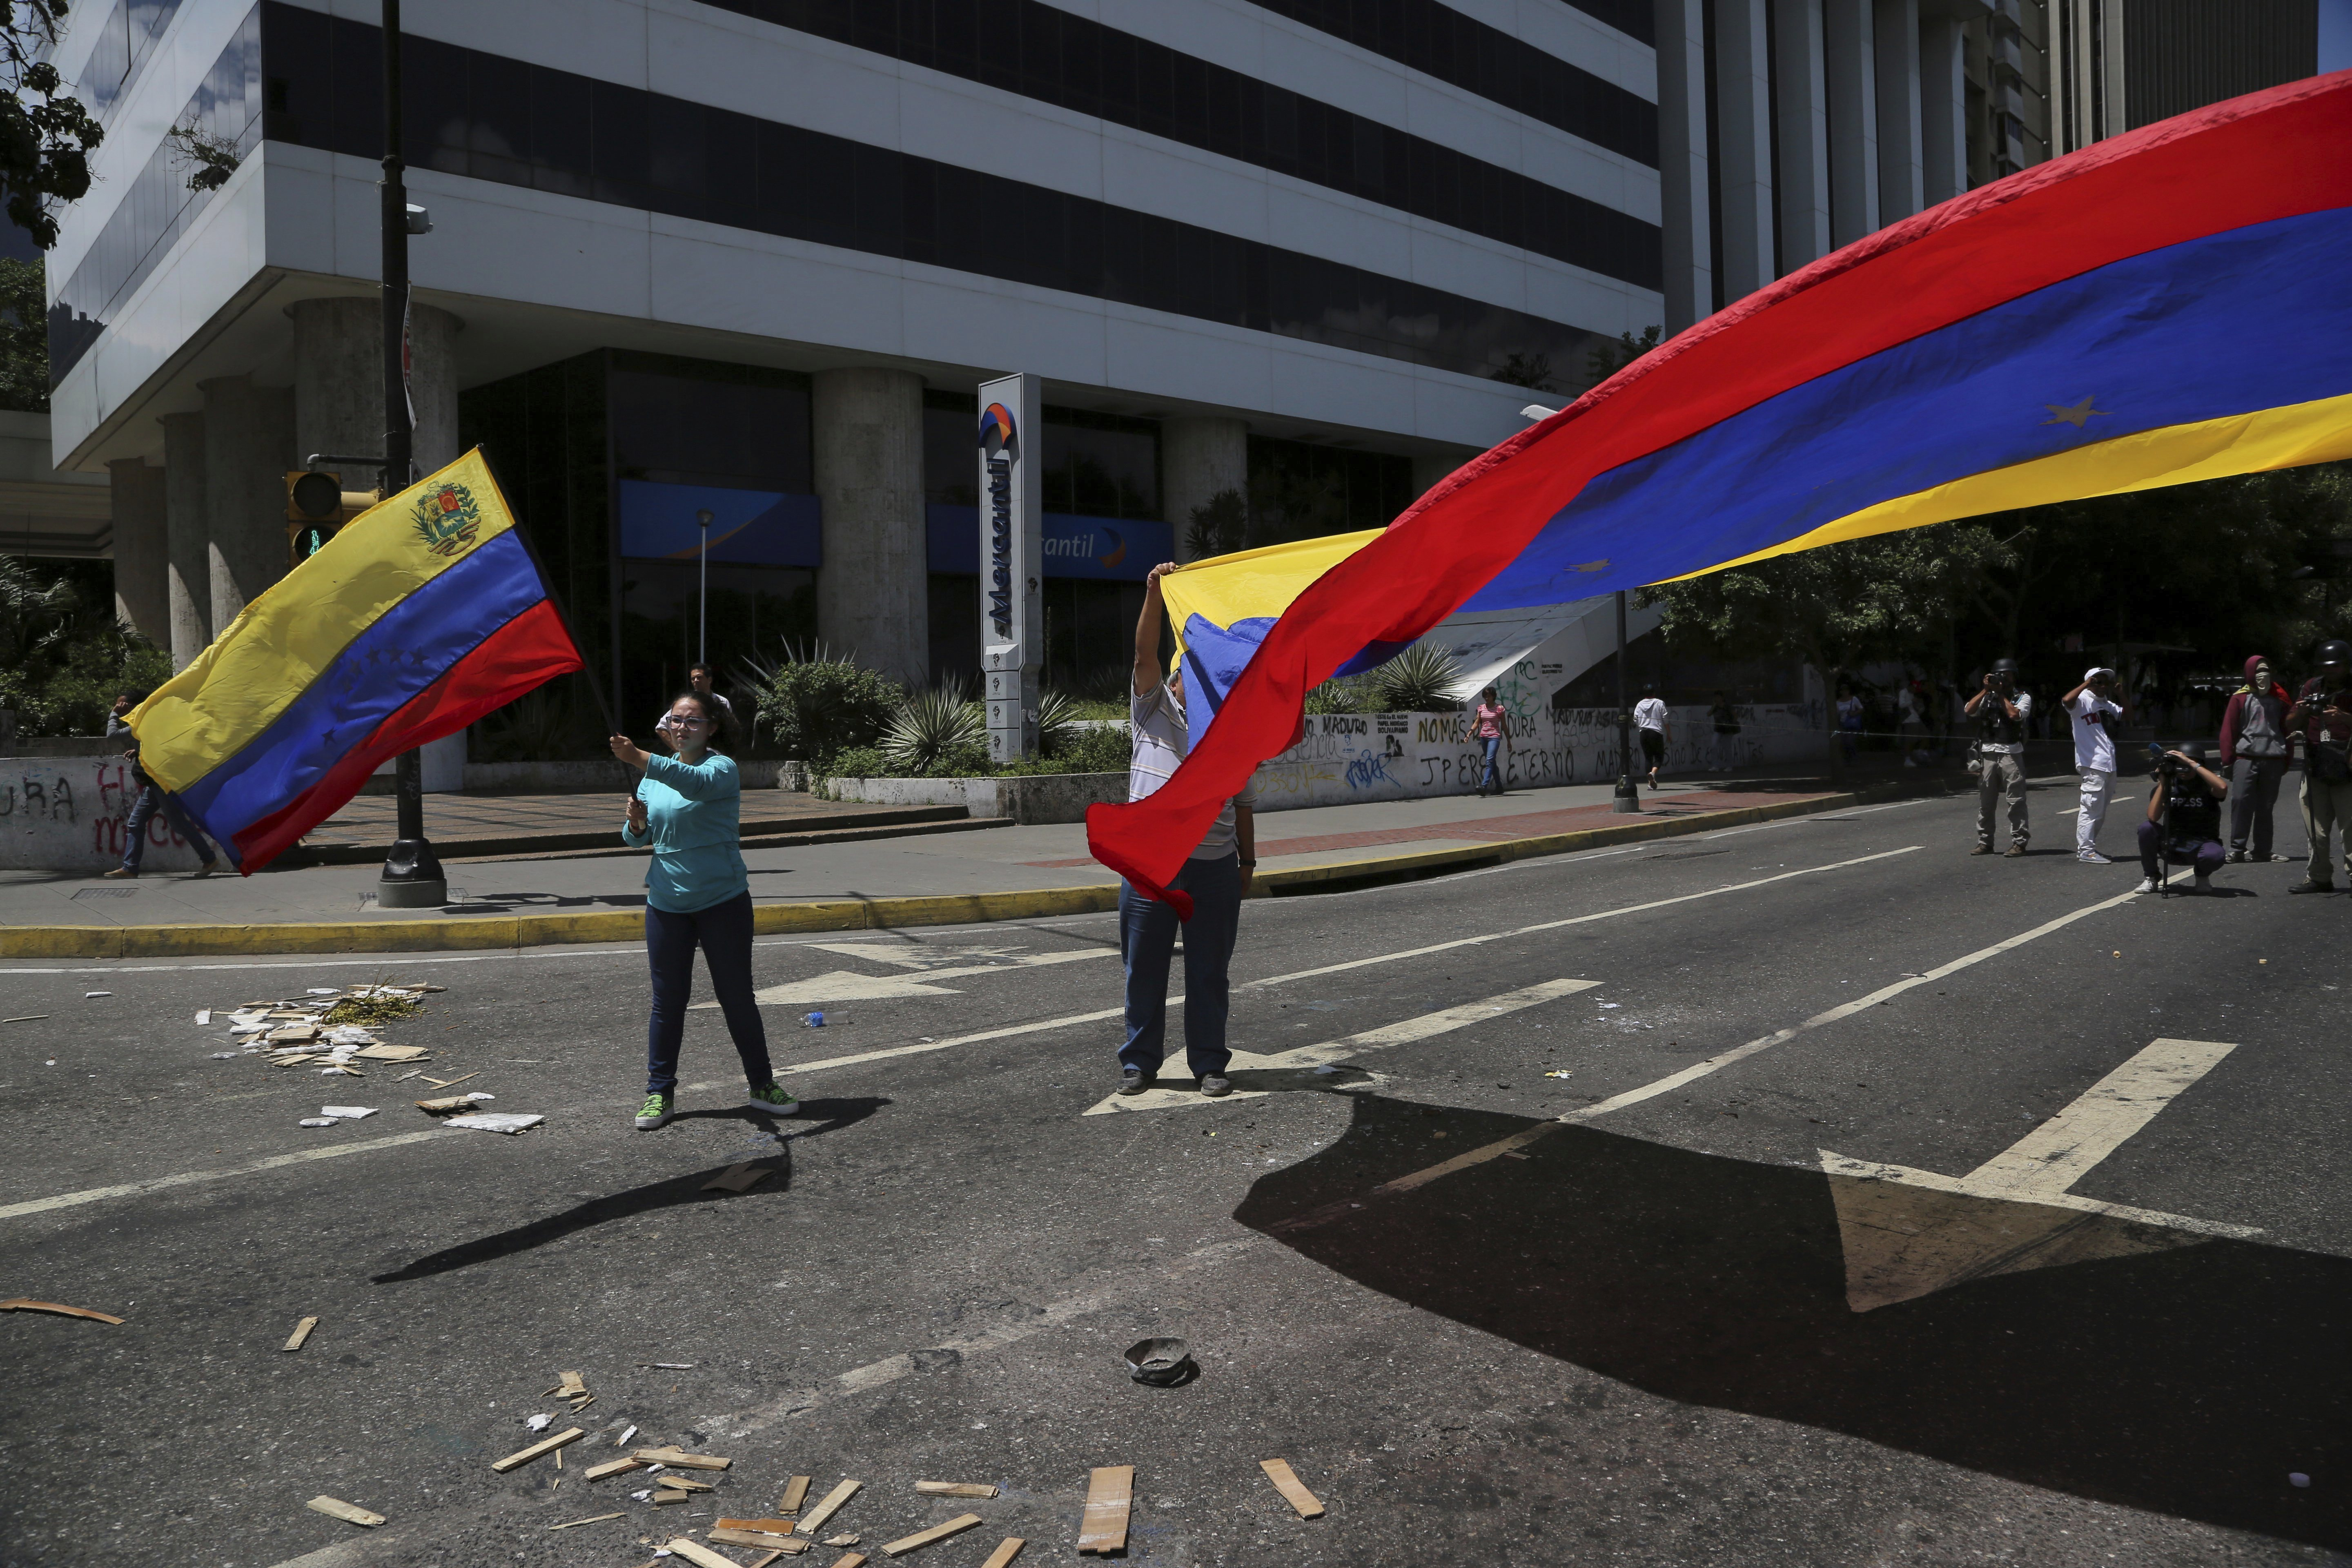 """Venezuela Political Crisis-2 Anti-government demonstrators wave Venezuelan national flags during a protest against Venezuela's President Nicolas Maduro in Caracas, Venezuela, Tuesday, Aug. 8, 2017. The U.S. State Department is repeating its rejection of the new government-loaded assembly rewriting Venezuela's constitution, saying it's """"an illegitimate product of a flawed process designed by a dictator."""" (AP Photo/Wil Riera)"""